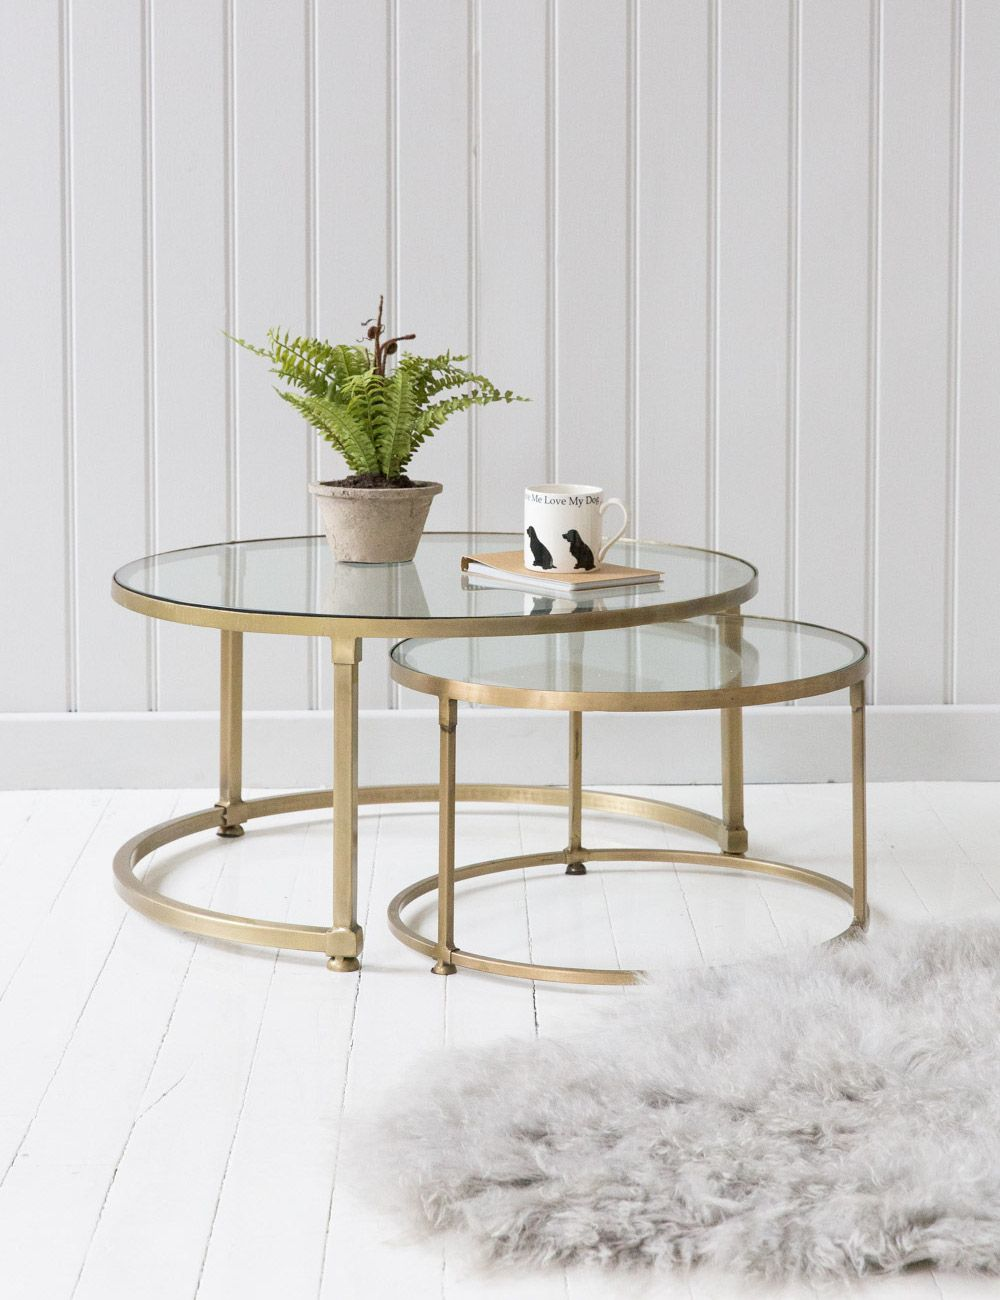 12 round coffee tables we love #theeverygirl // international luxe